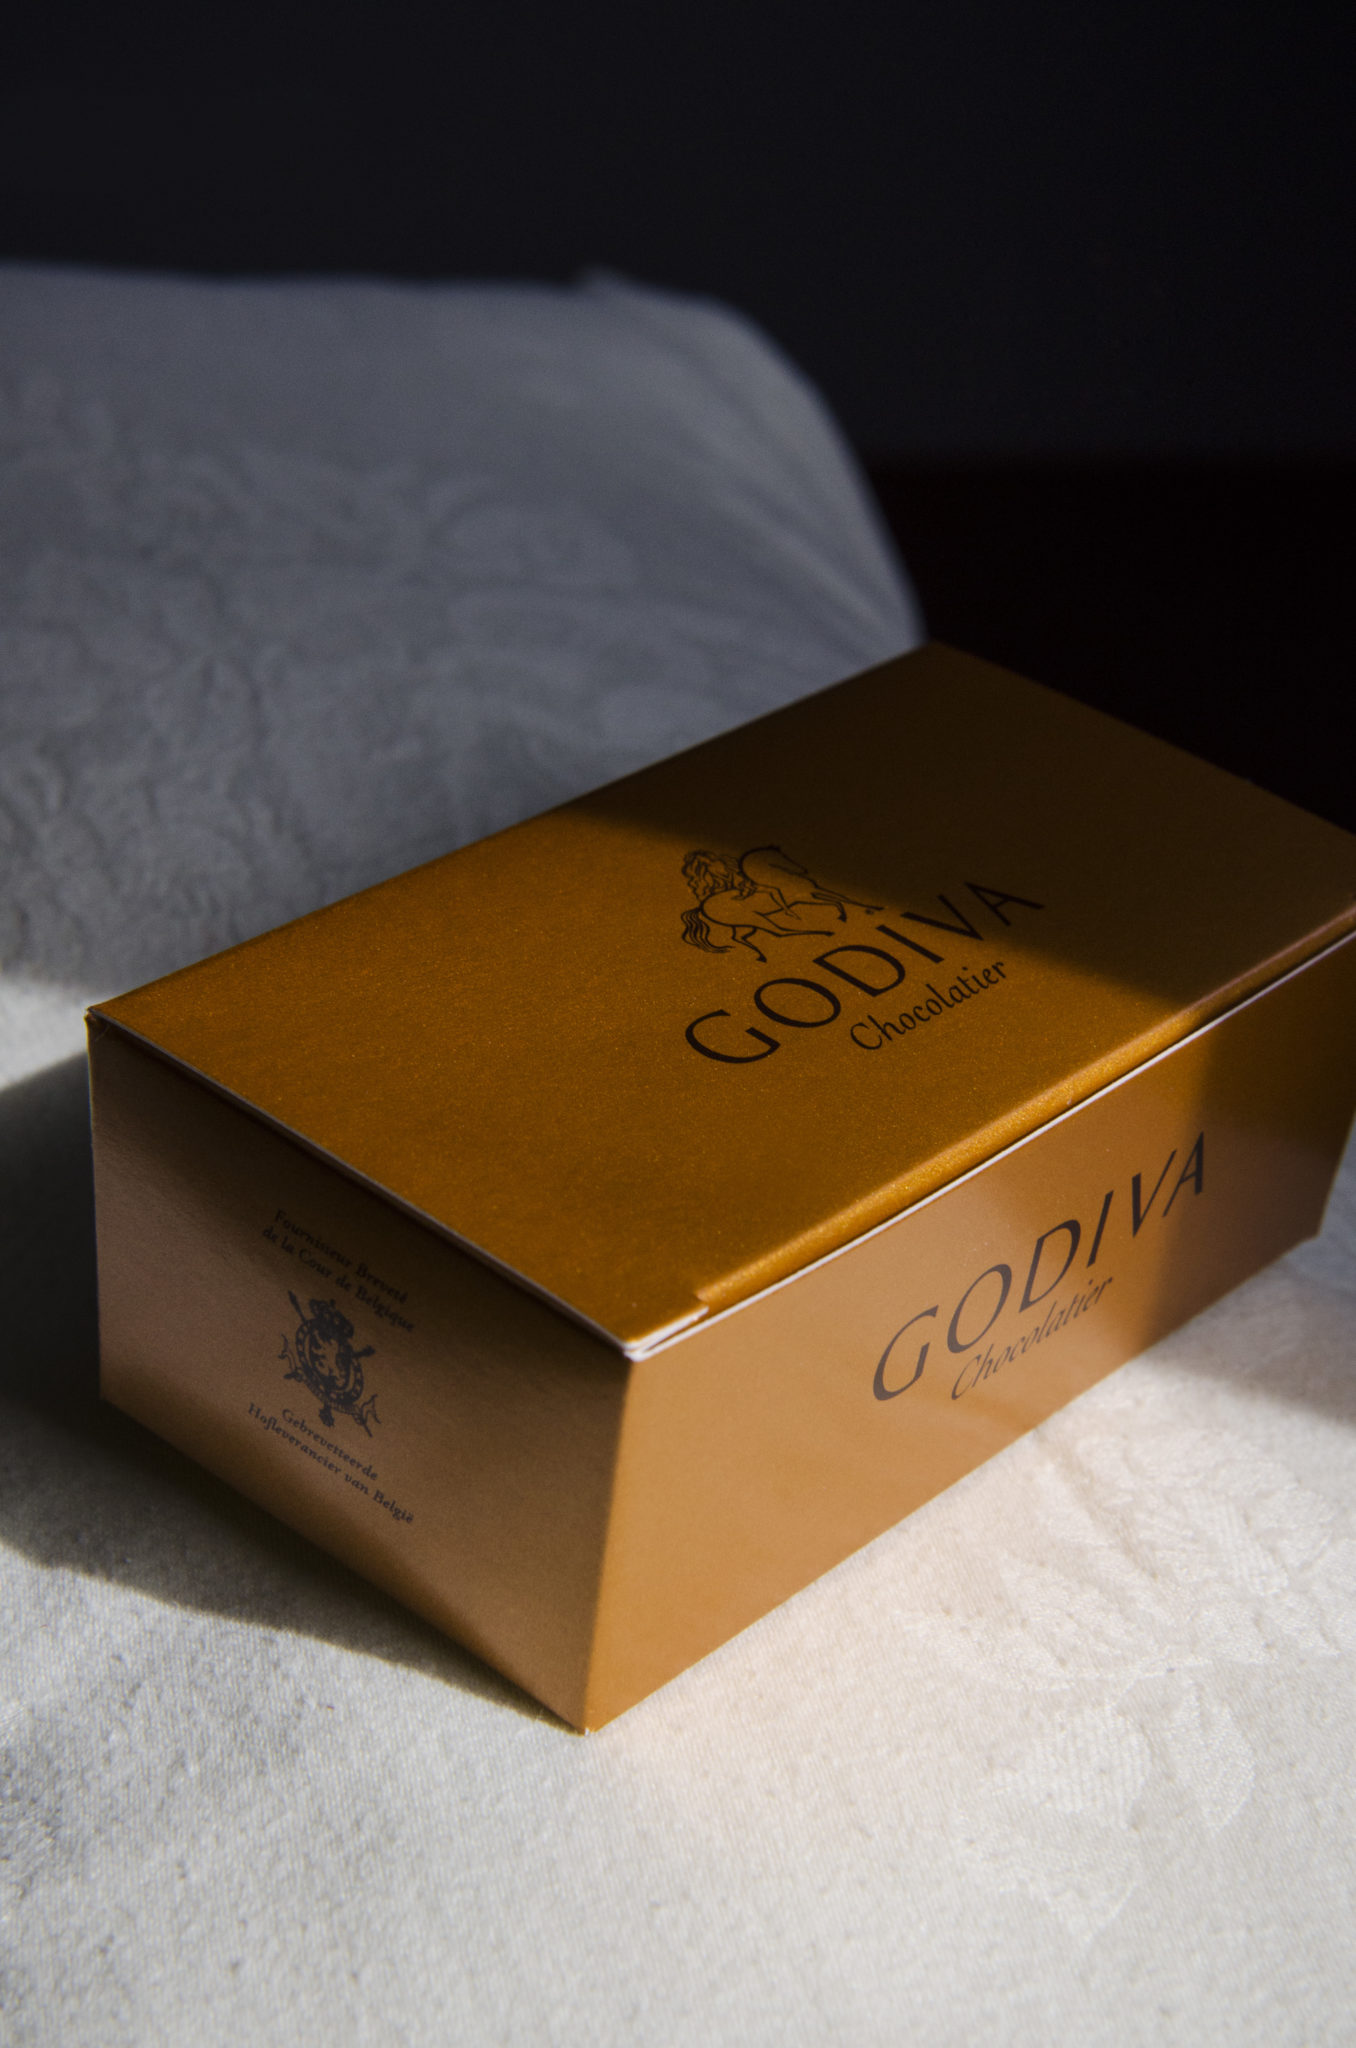 Hainan-Business-Class-Godiva-Chocolate